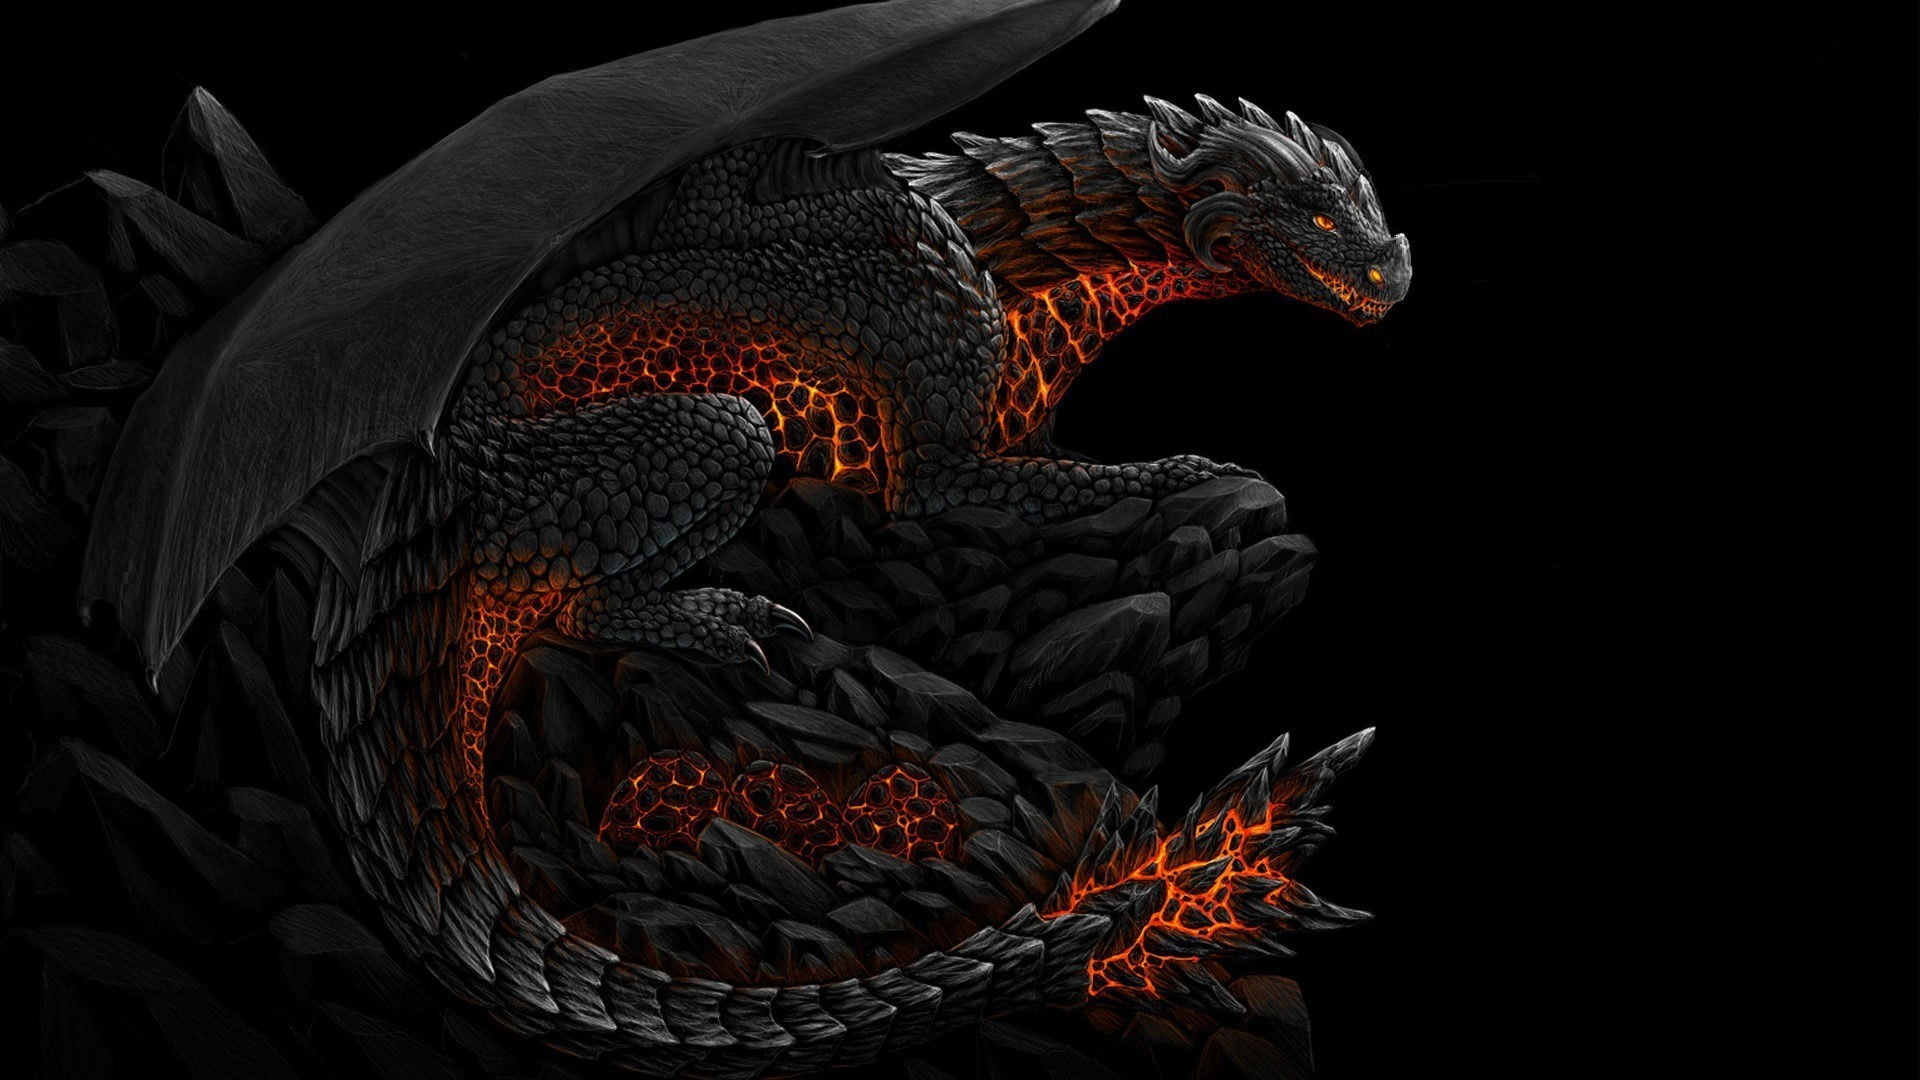 Hd Red Eyes Black Dragon Wallpapers Wallpaper Cave 1920x1080 Download Hd Wallpaper Wallpapertip